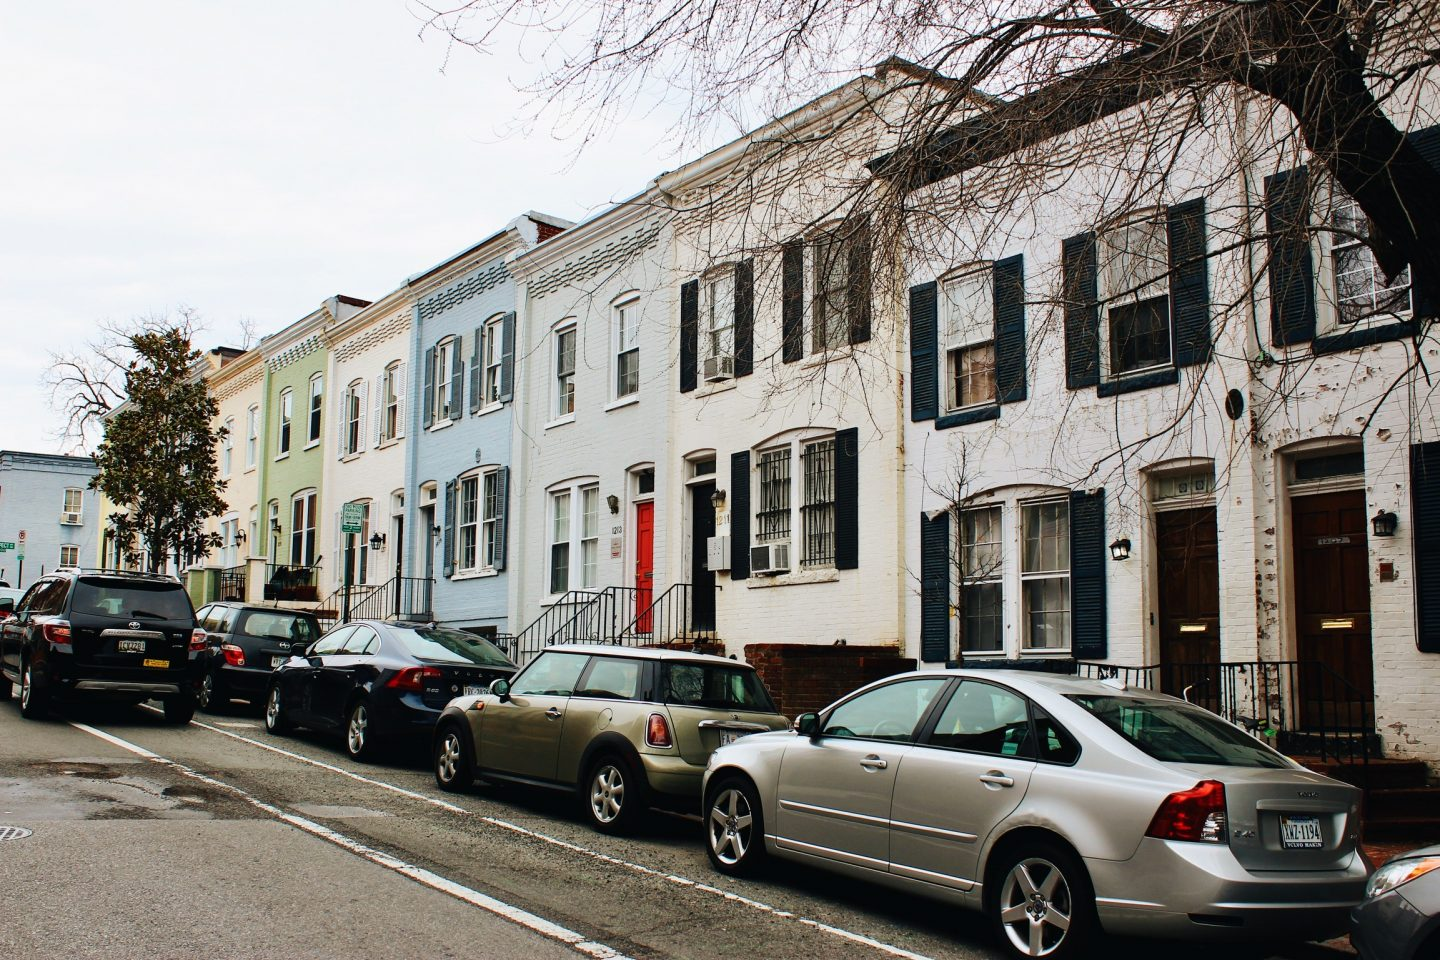 Add Alexandria to your list of what to see in Washington DC